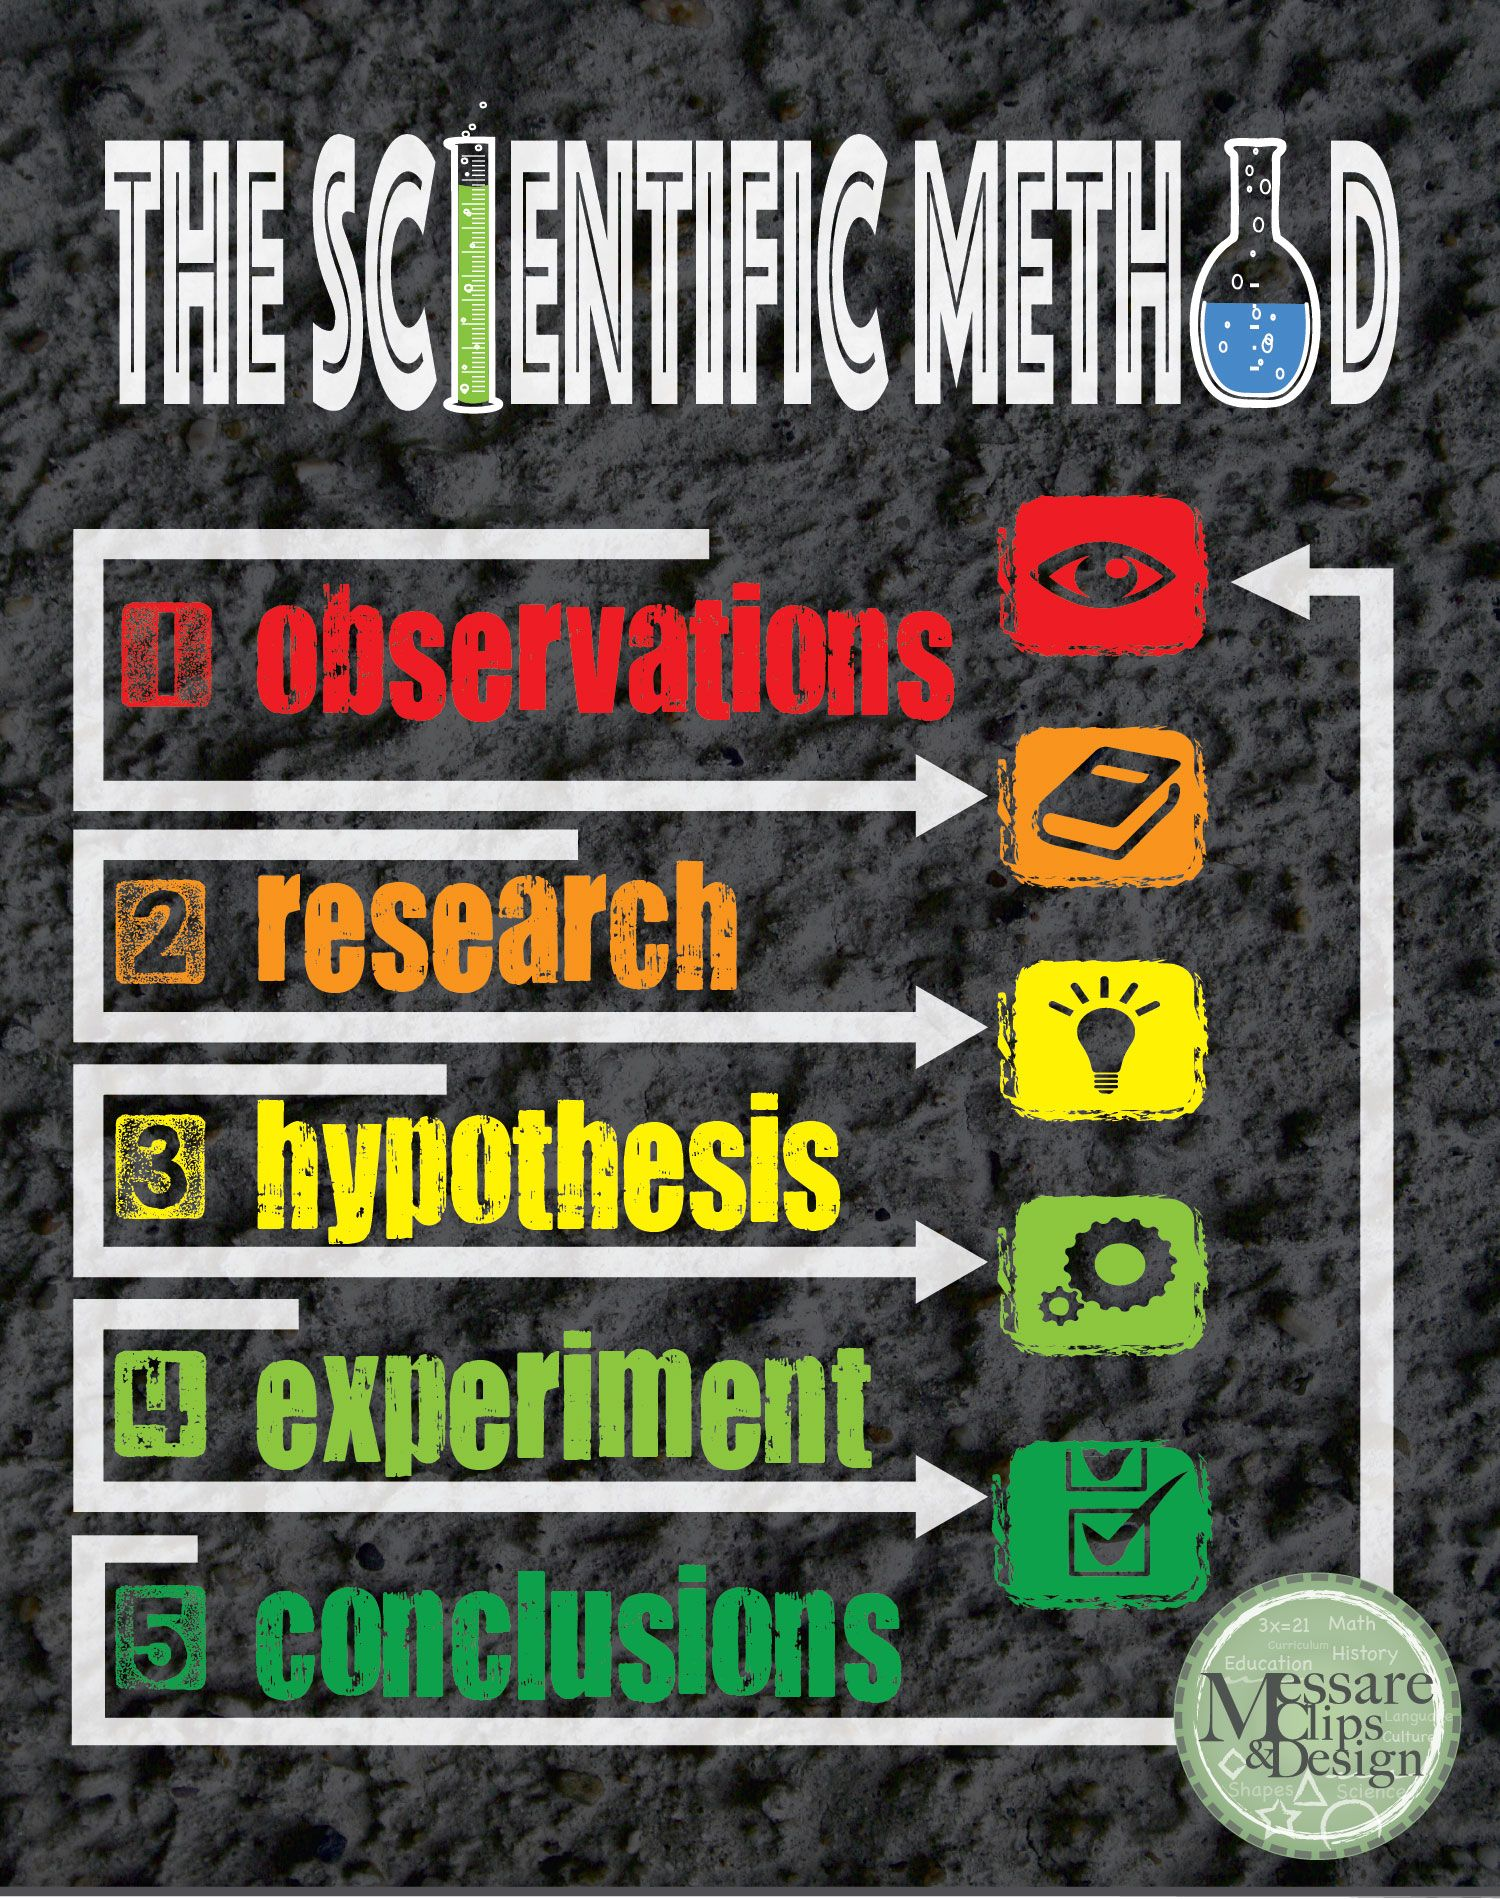 Poster design and printing online - A Custom Design Poster Of The Scientific Method This Poster Comes Ready To Print In